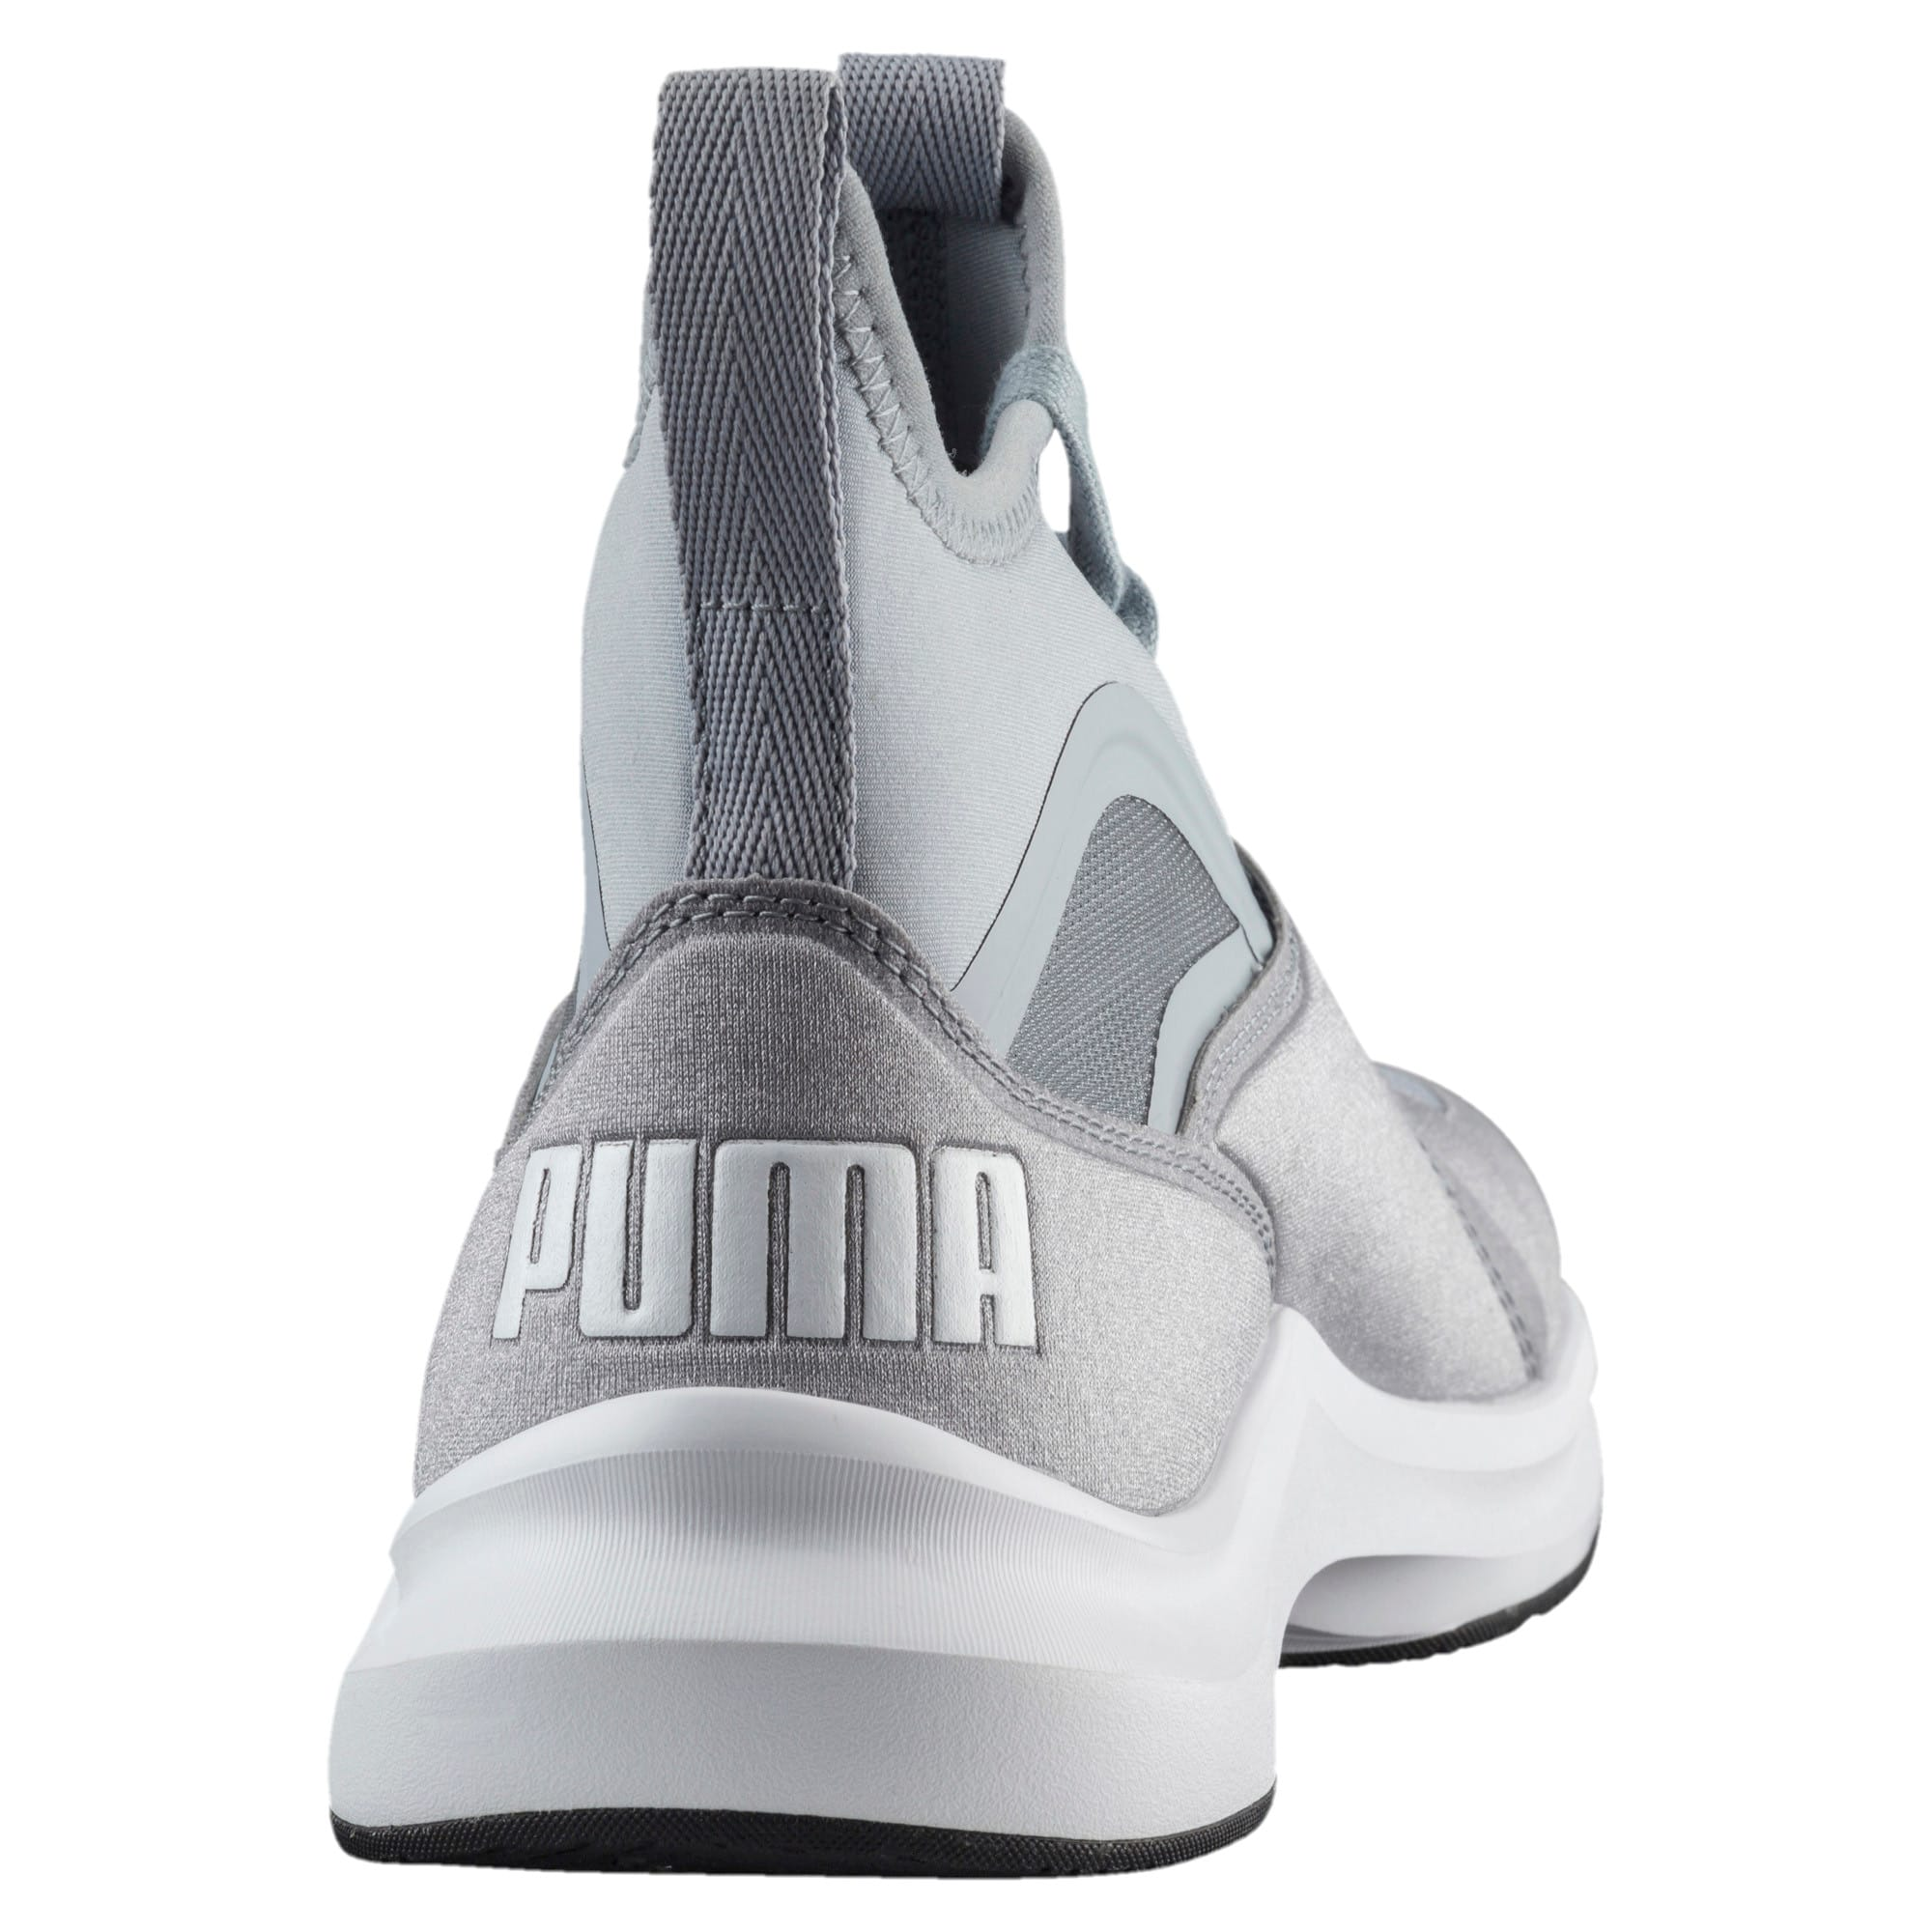 Thumbnail 4 of Phenom Women's Training Shoes, Quarry-Puma White, medium